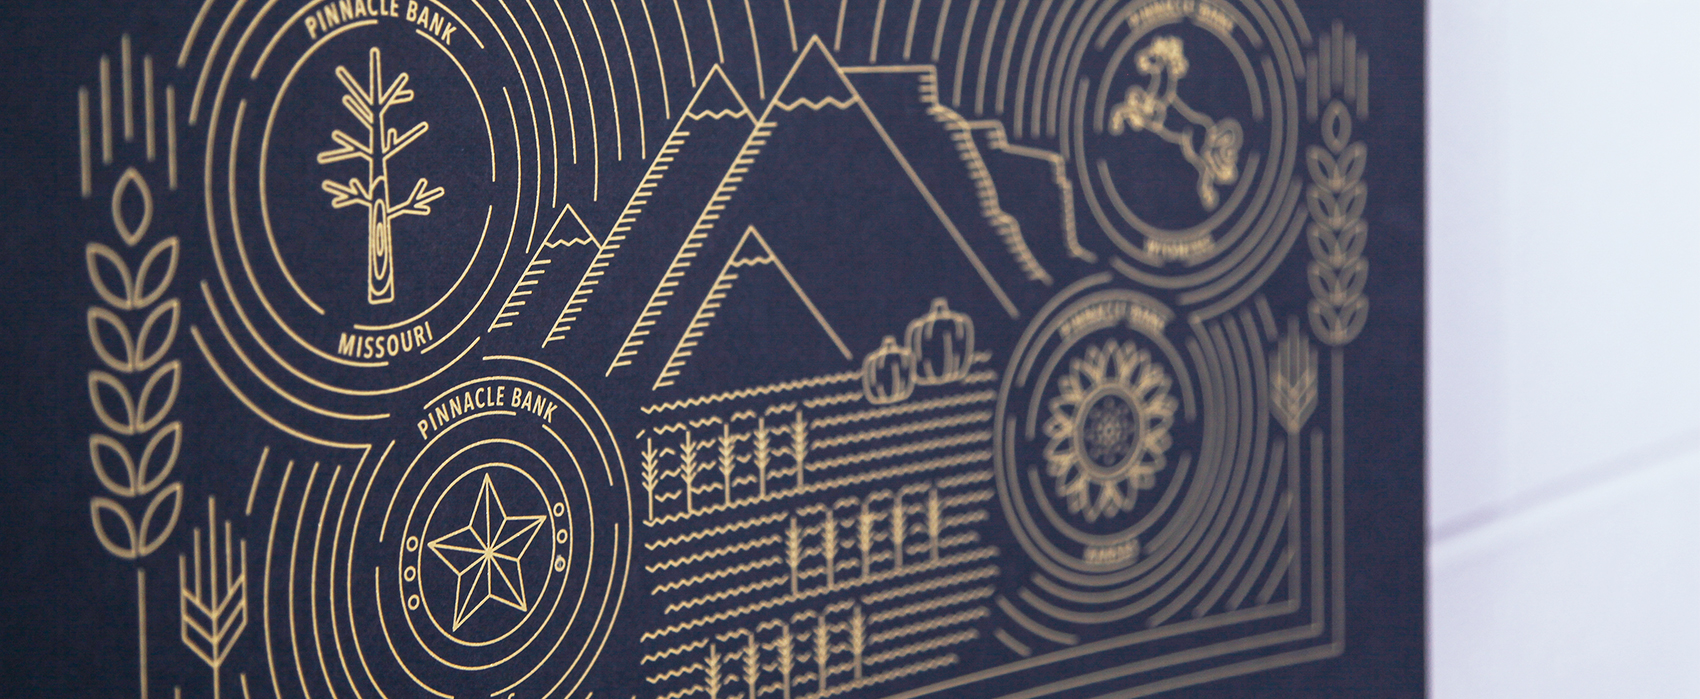 PinnBank_Poster_detail3